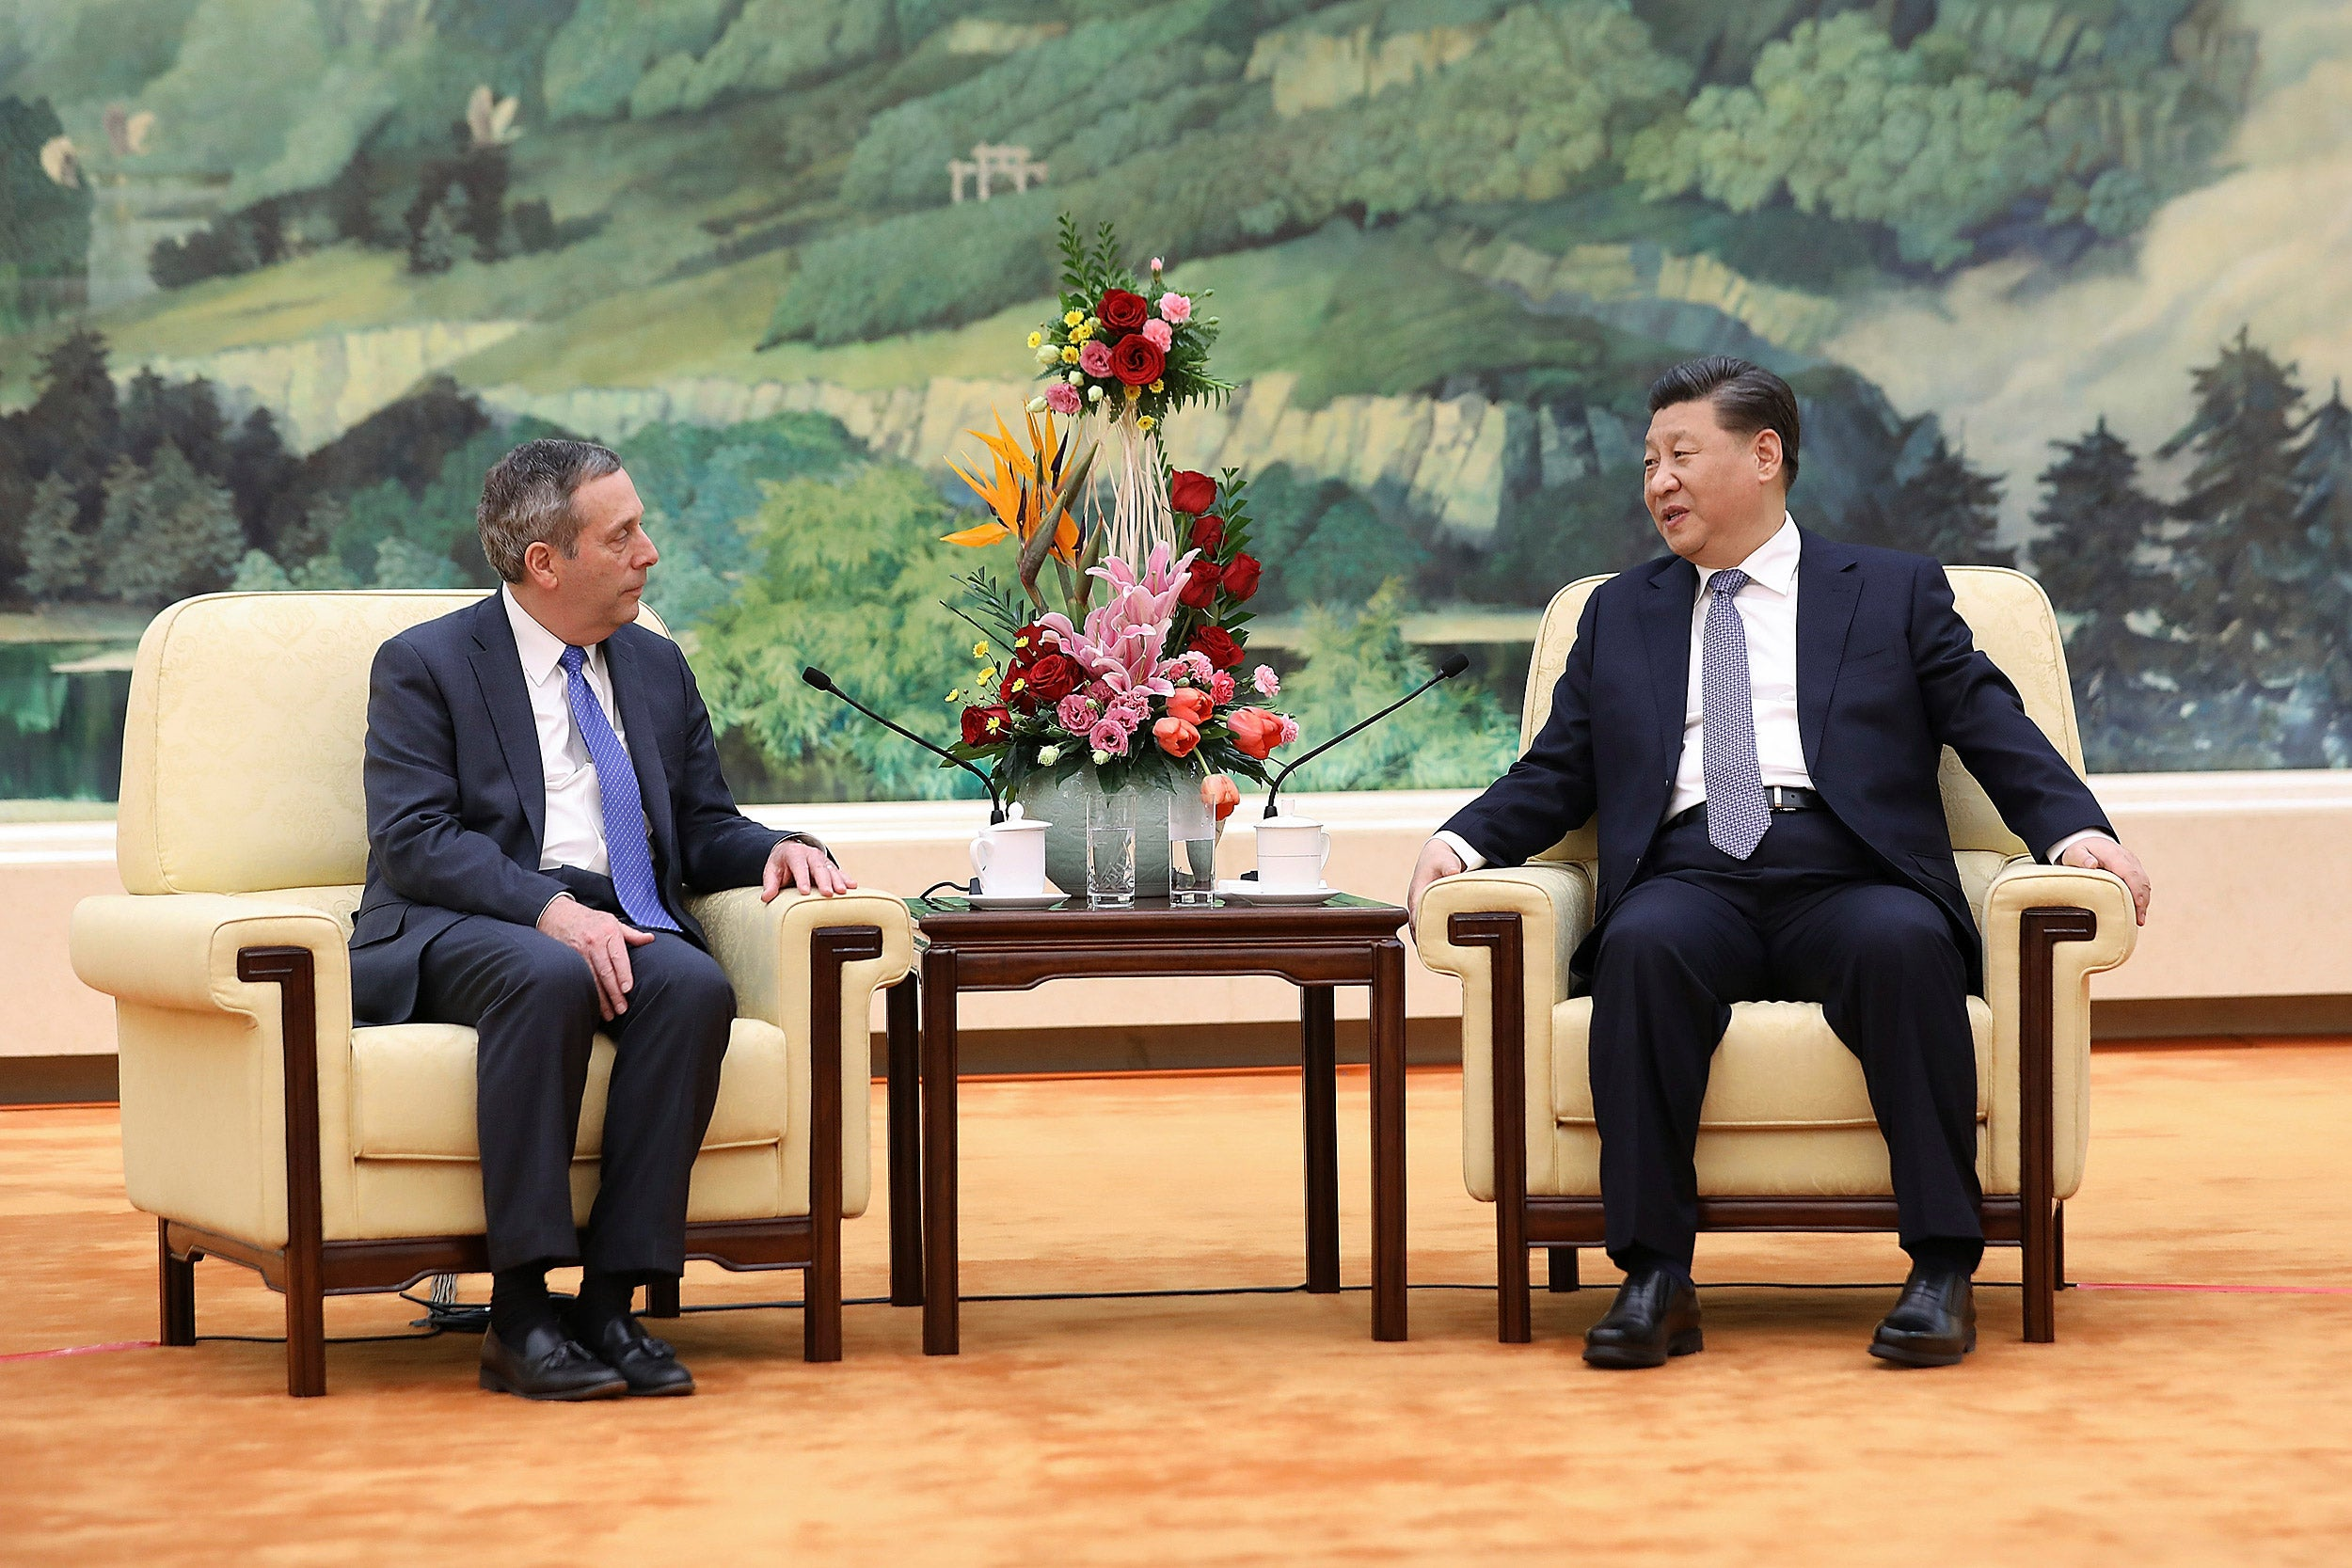 Harvard President Larry Bacow (left) meets with Chinese President Xi Jinping.